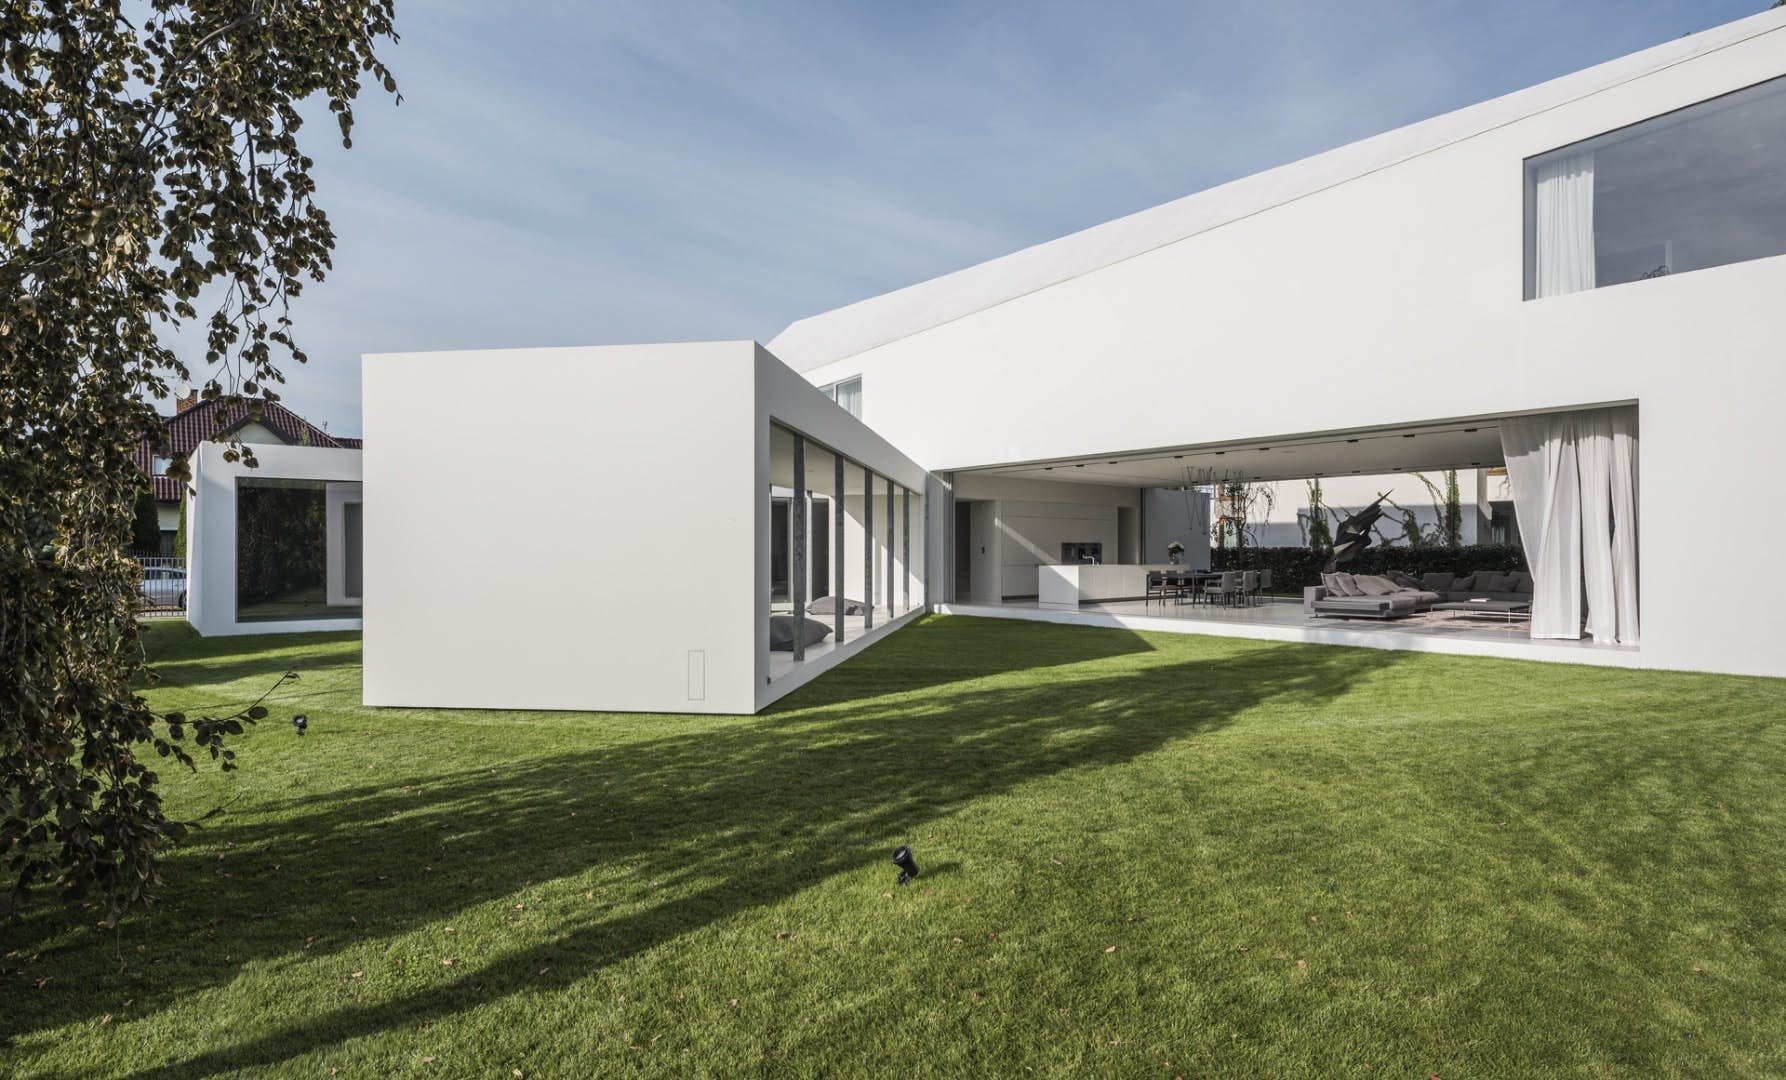 The Quadrant Home By KWK Promes Moves According To Sun